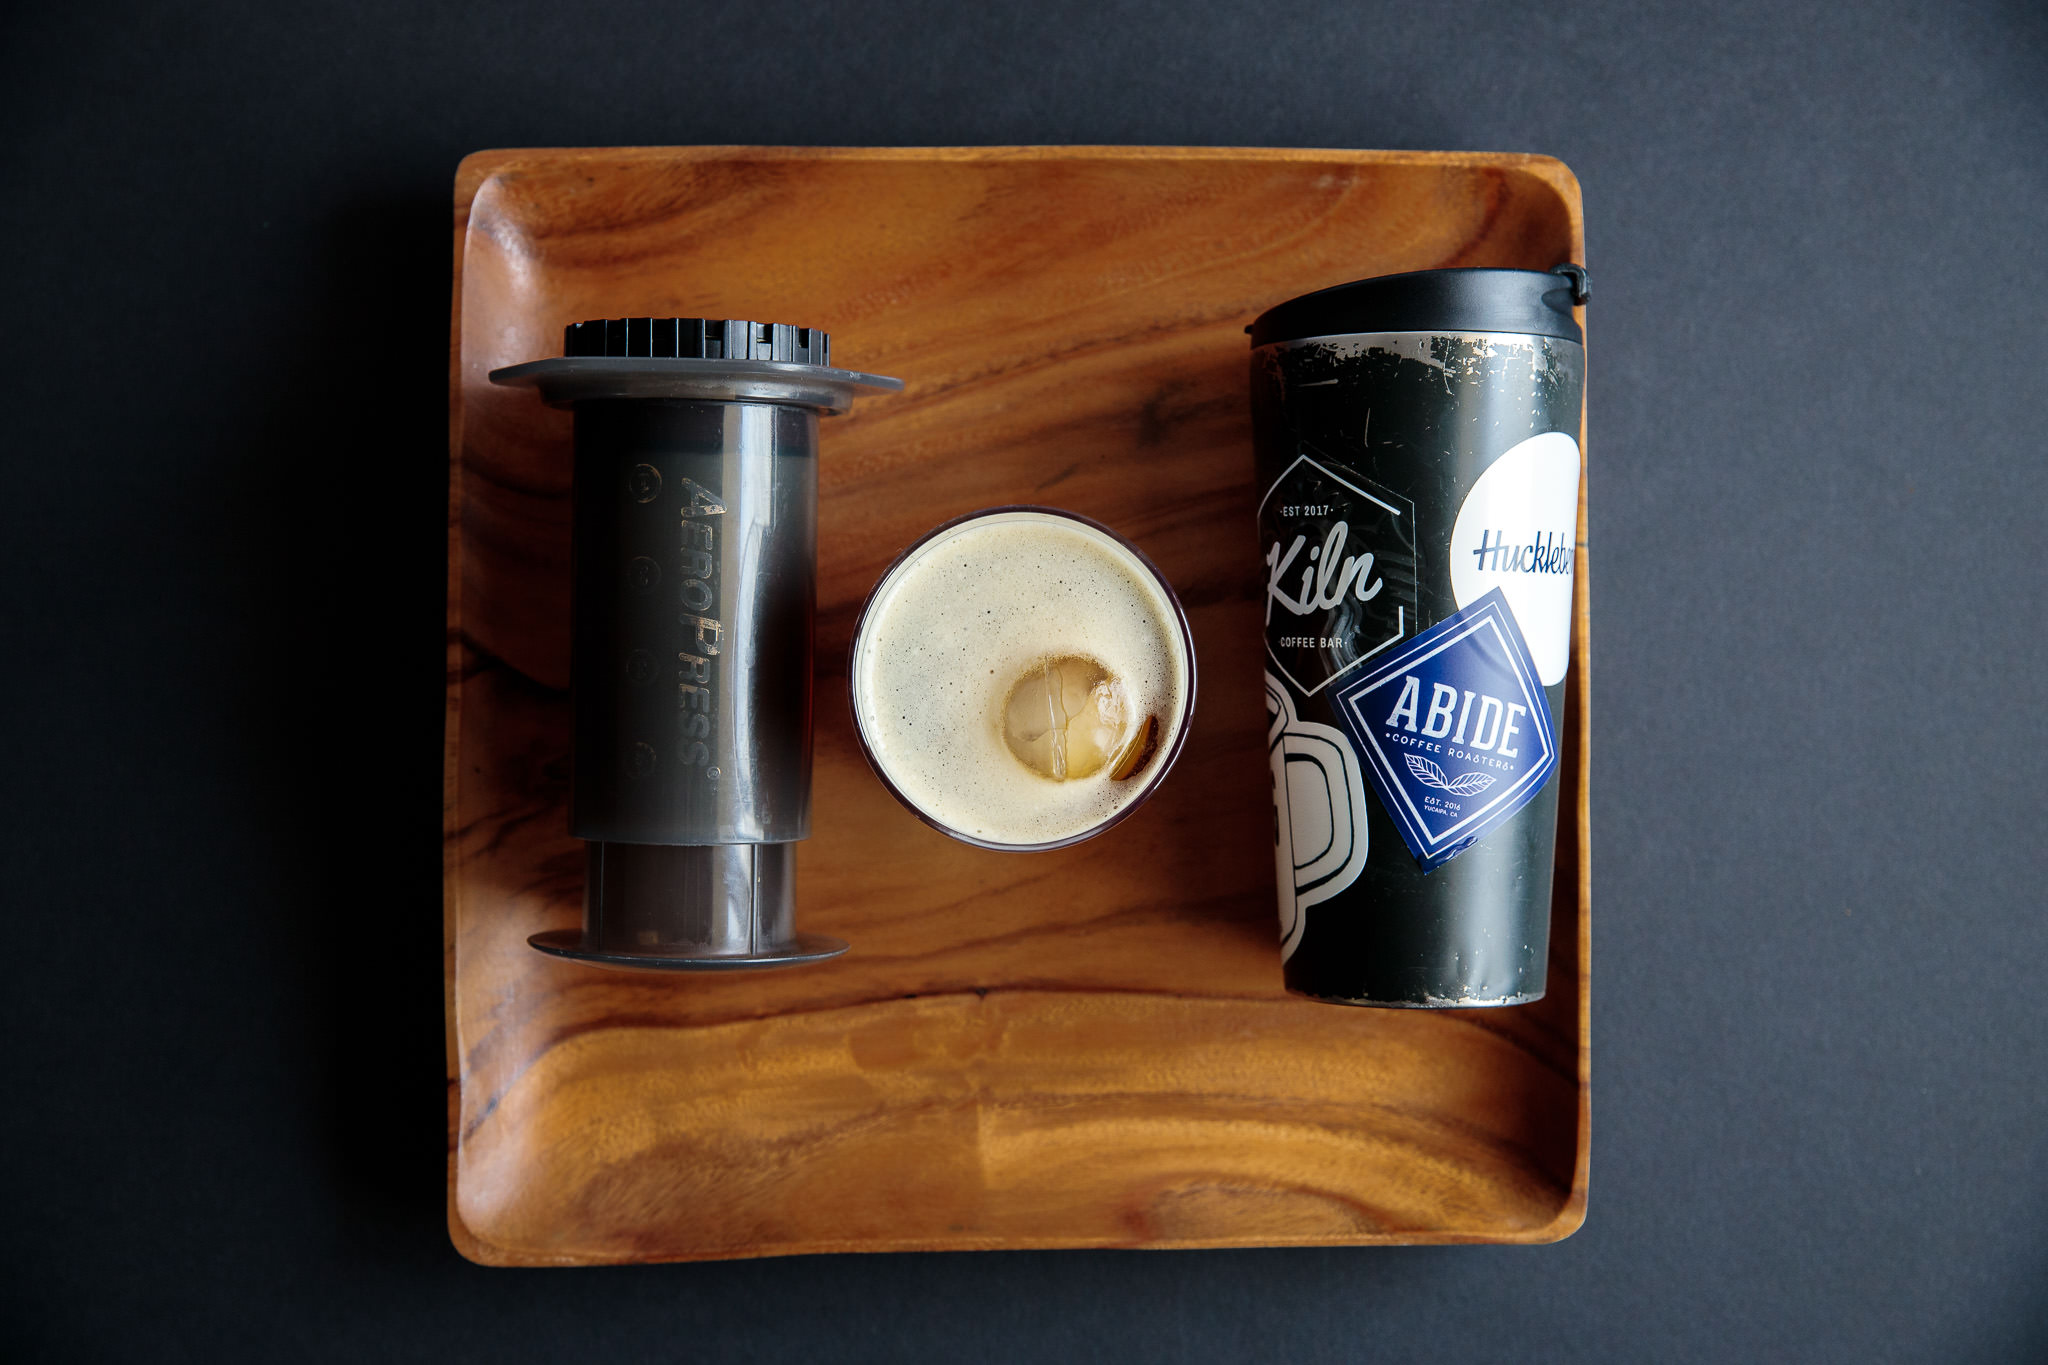 Iced cold brew coffee made in an Aeropress